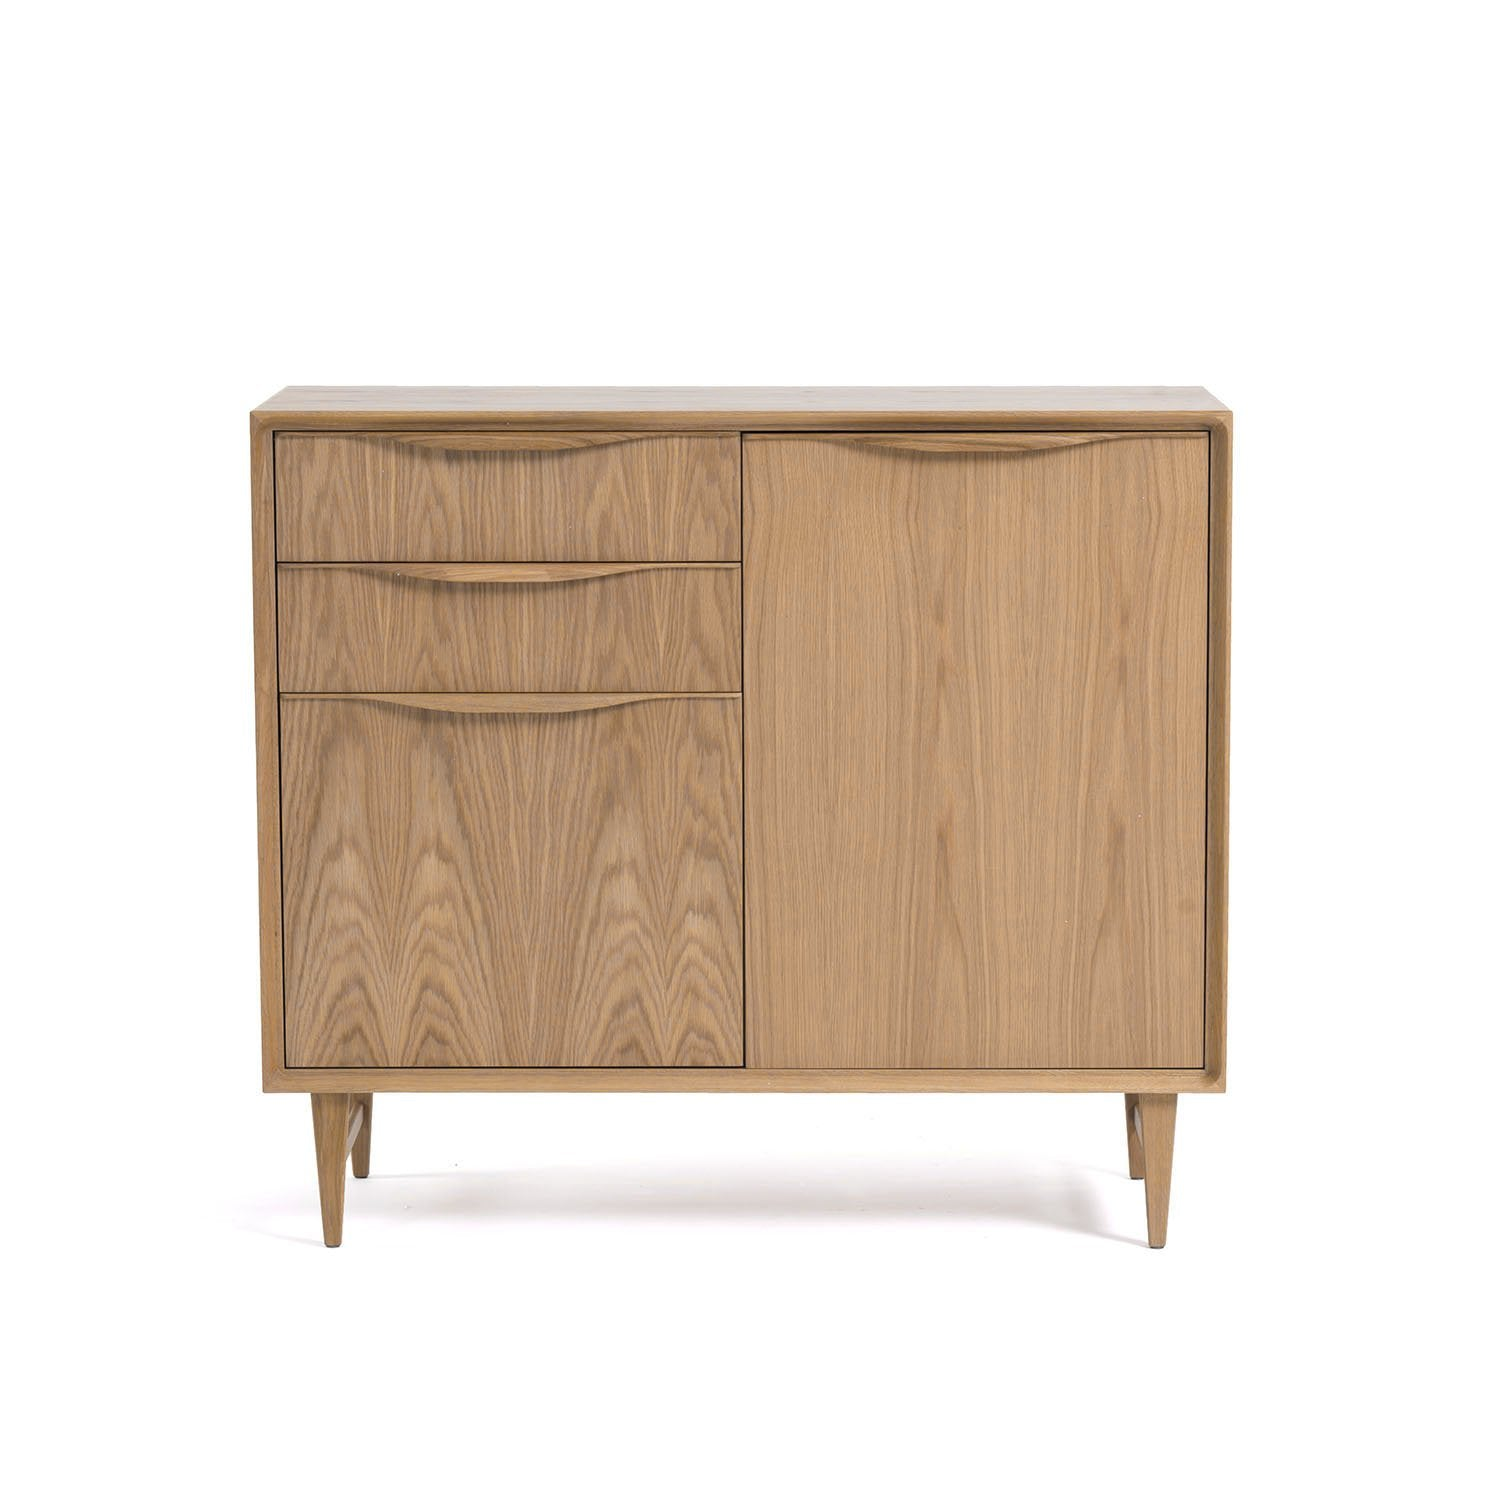 [FES8205OAK] Visselig Chest